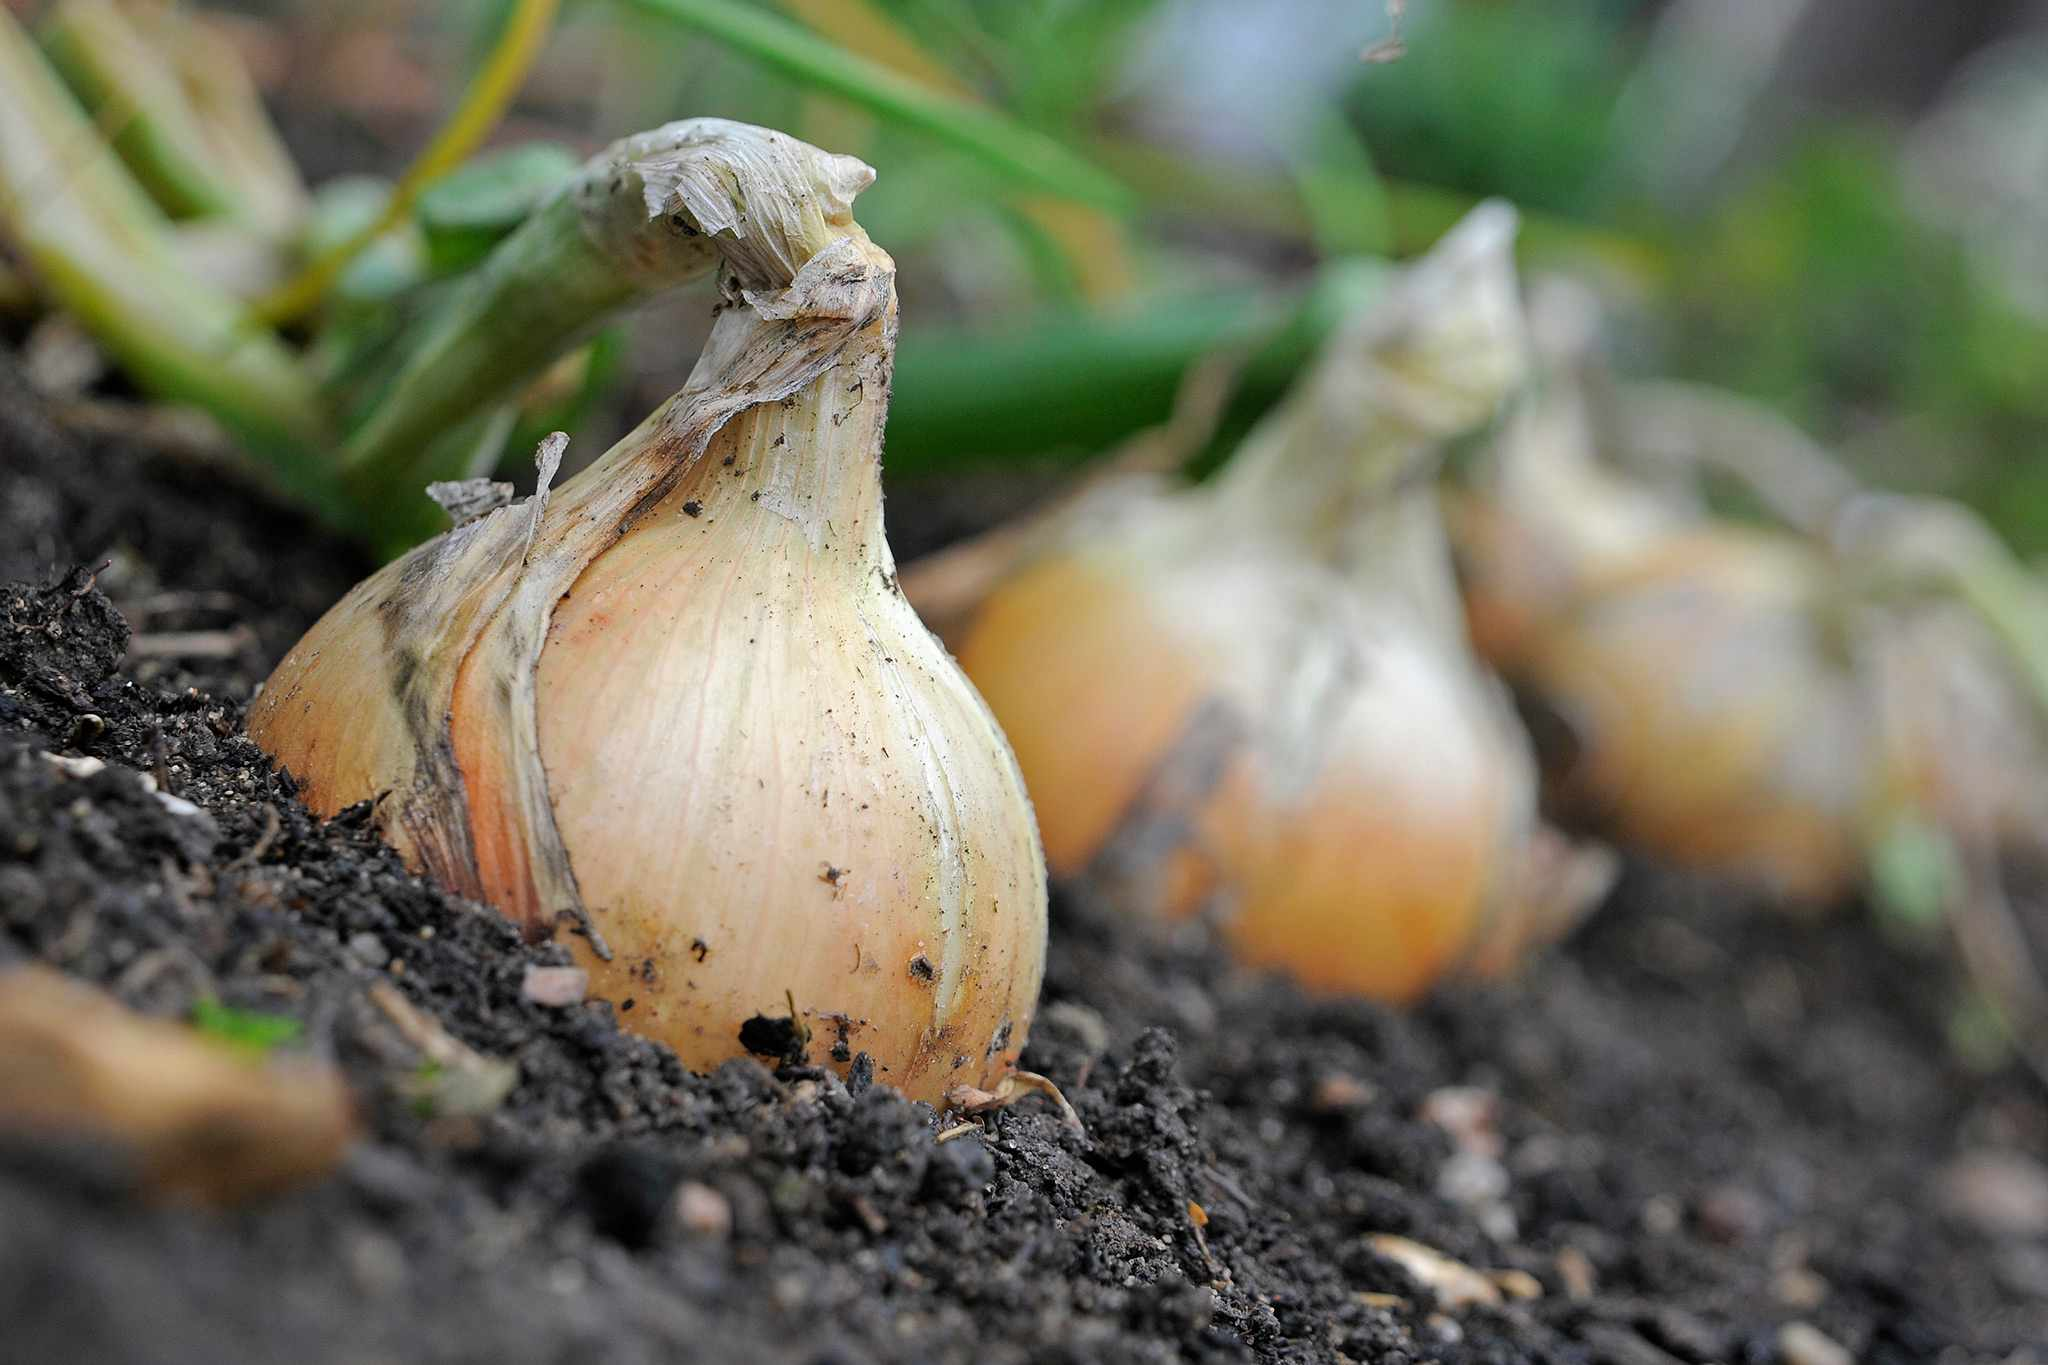 Onions ready for harvesting